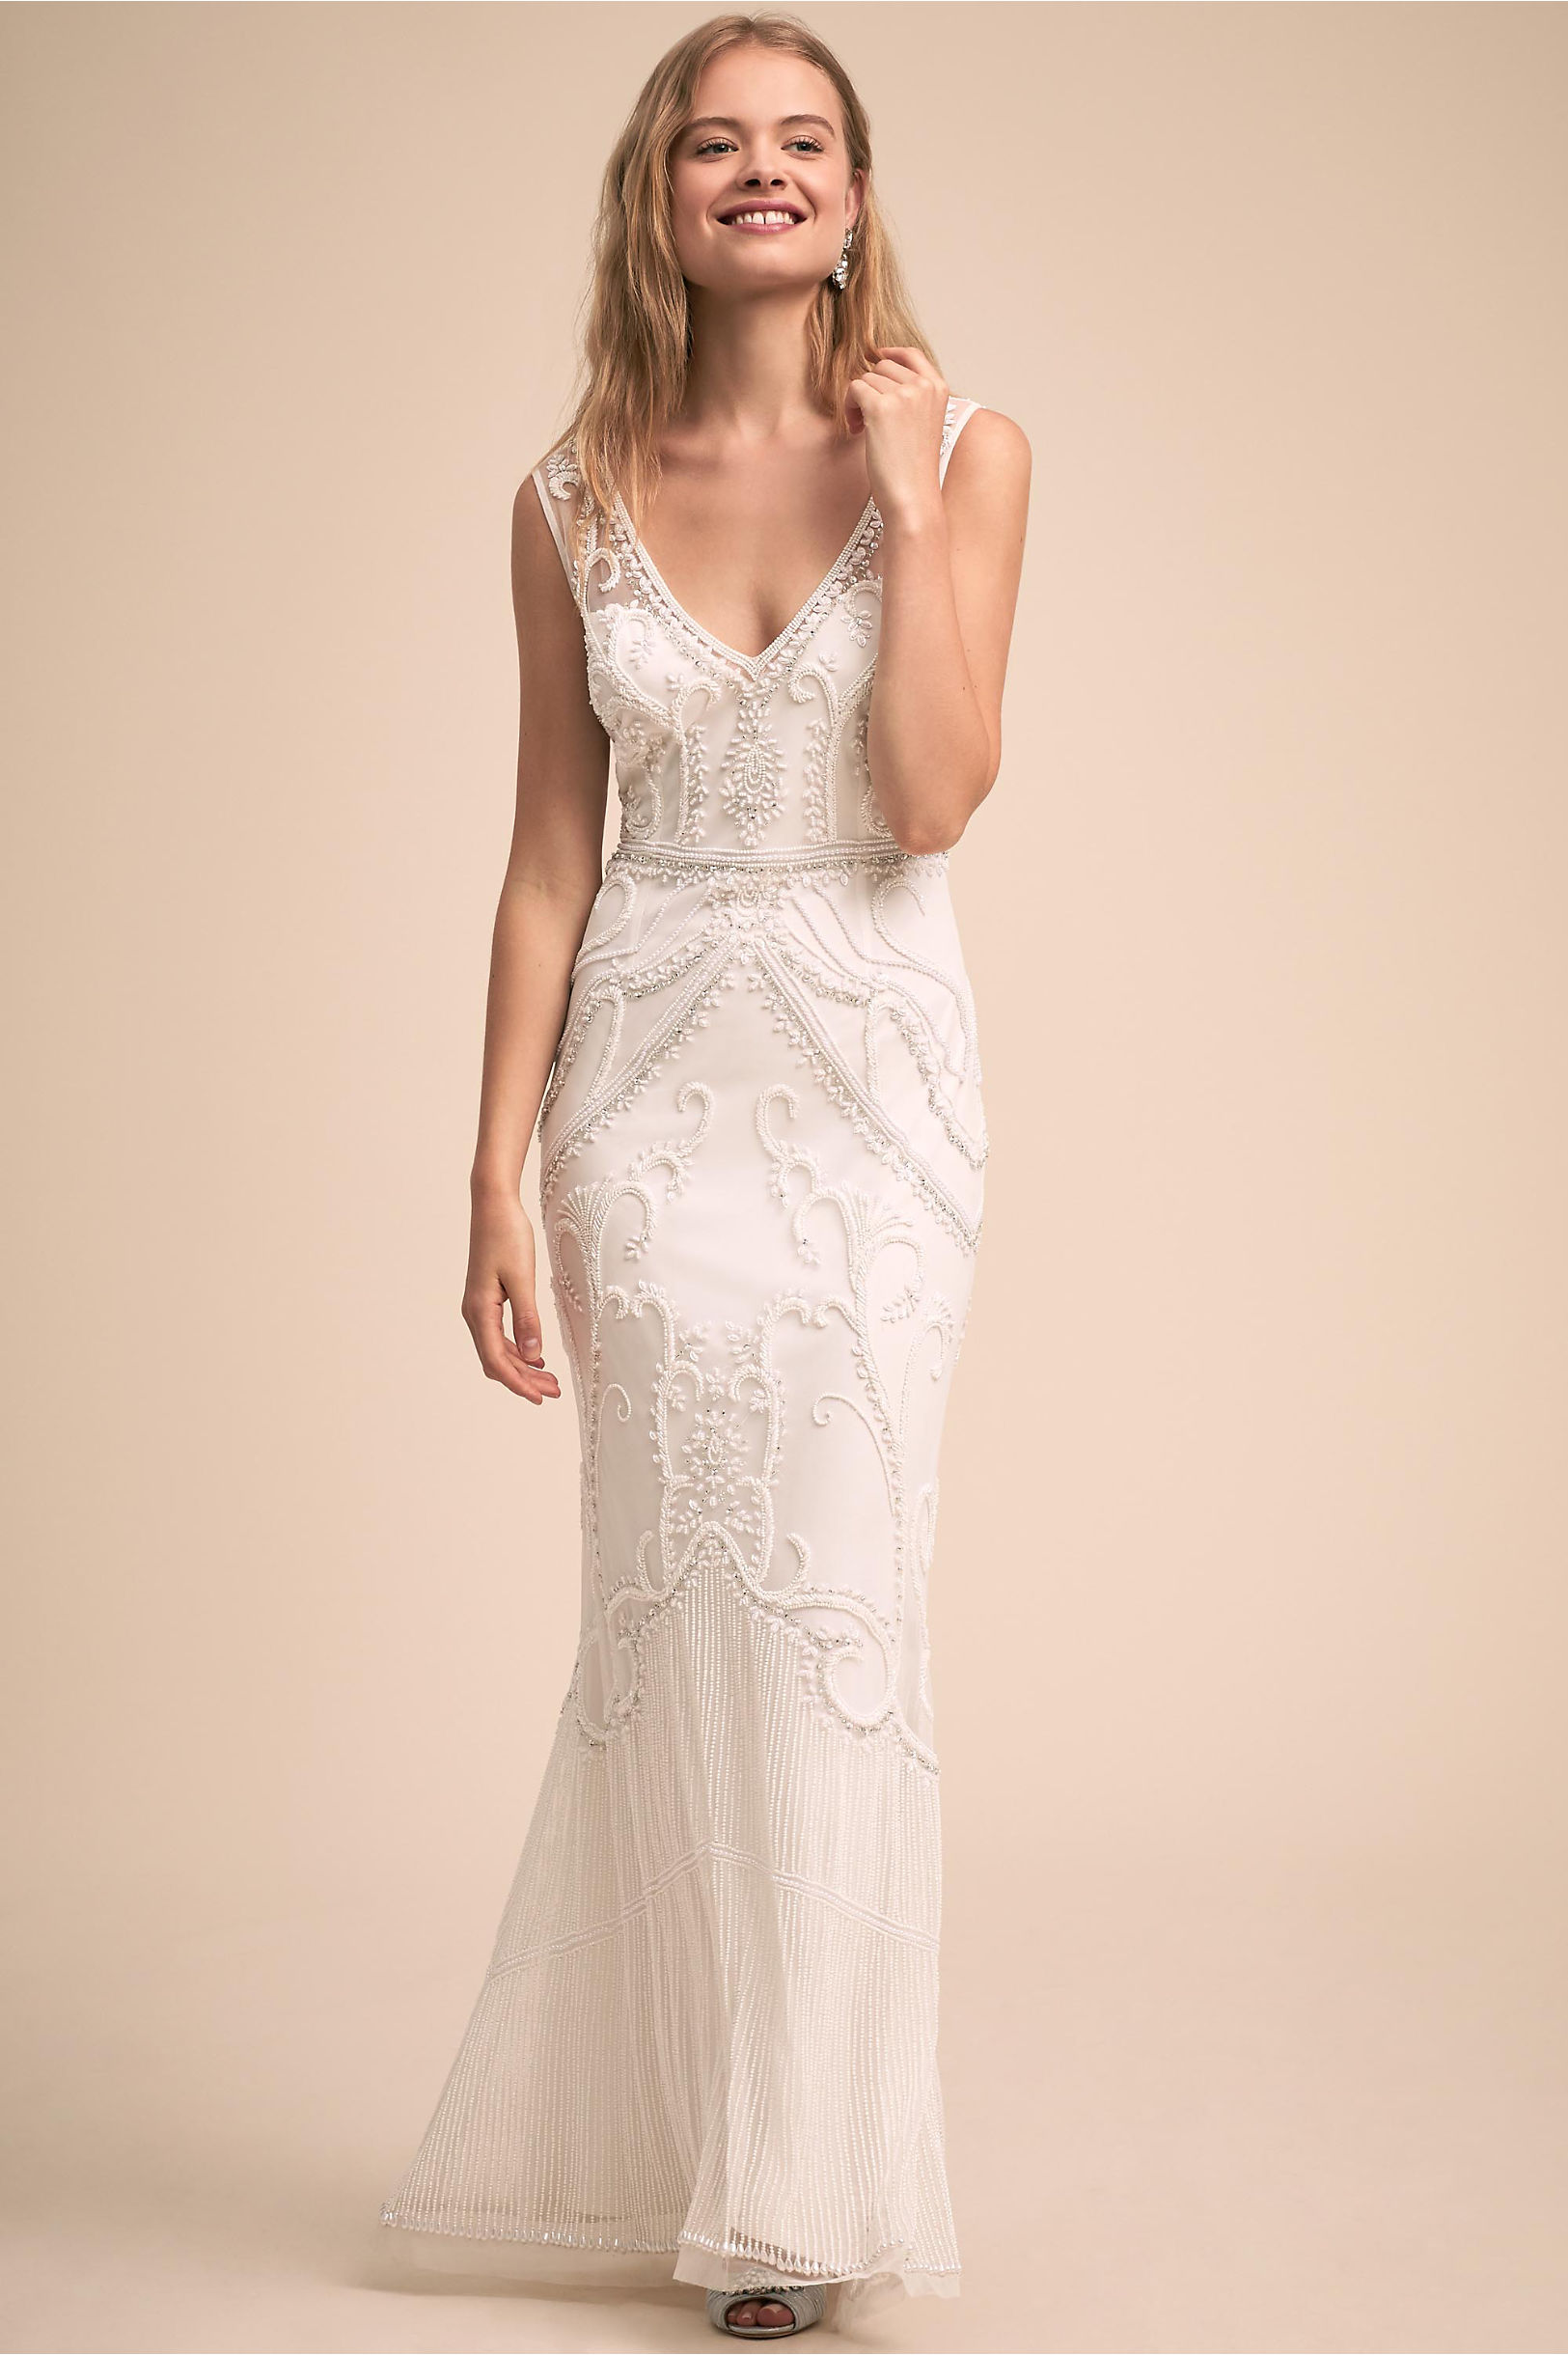 Sorrento dress by BHLDN